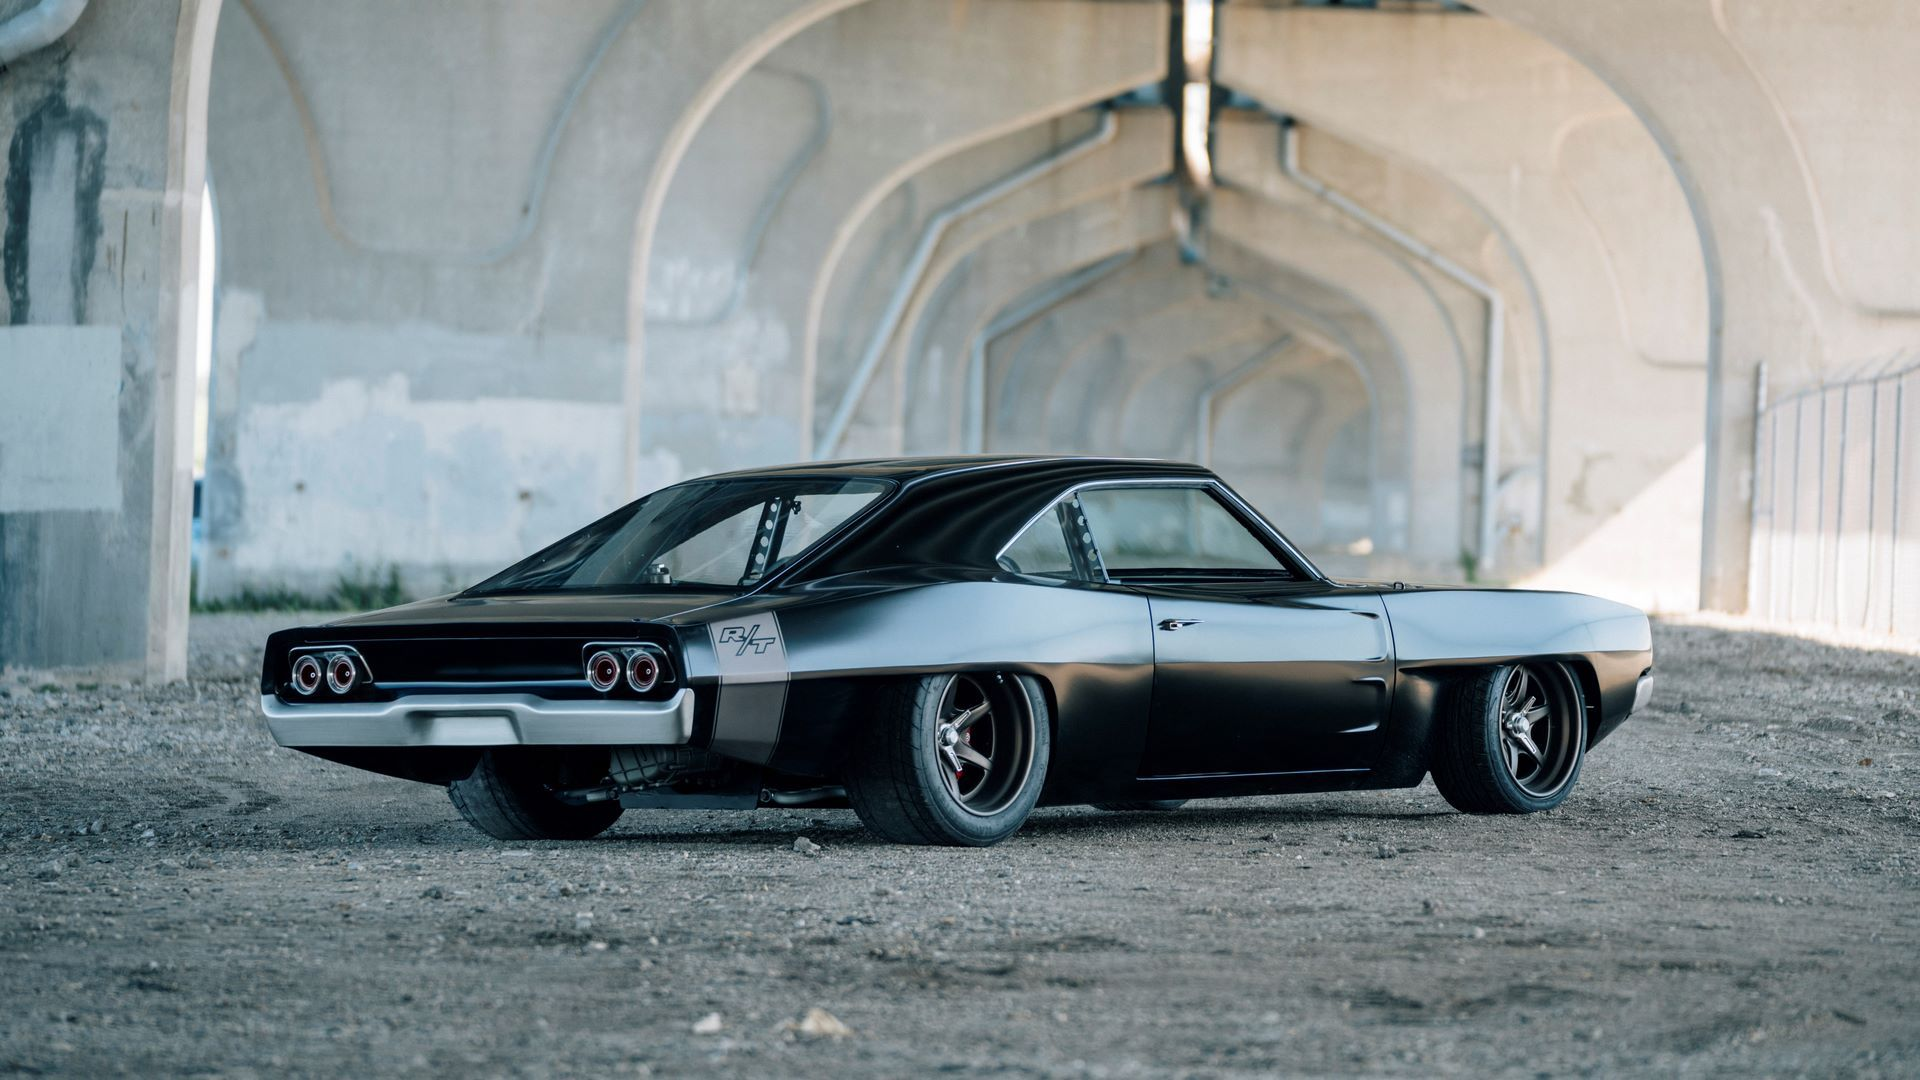 SpeedKore-Dodge-Charger-Hellacious-1968-5